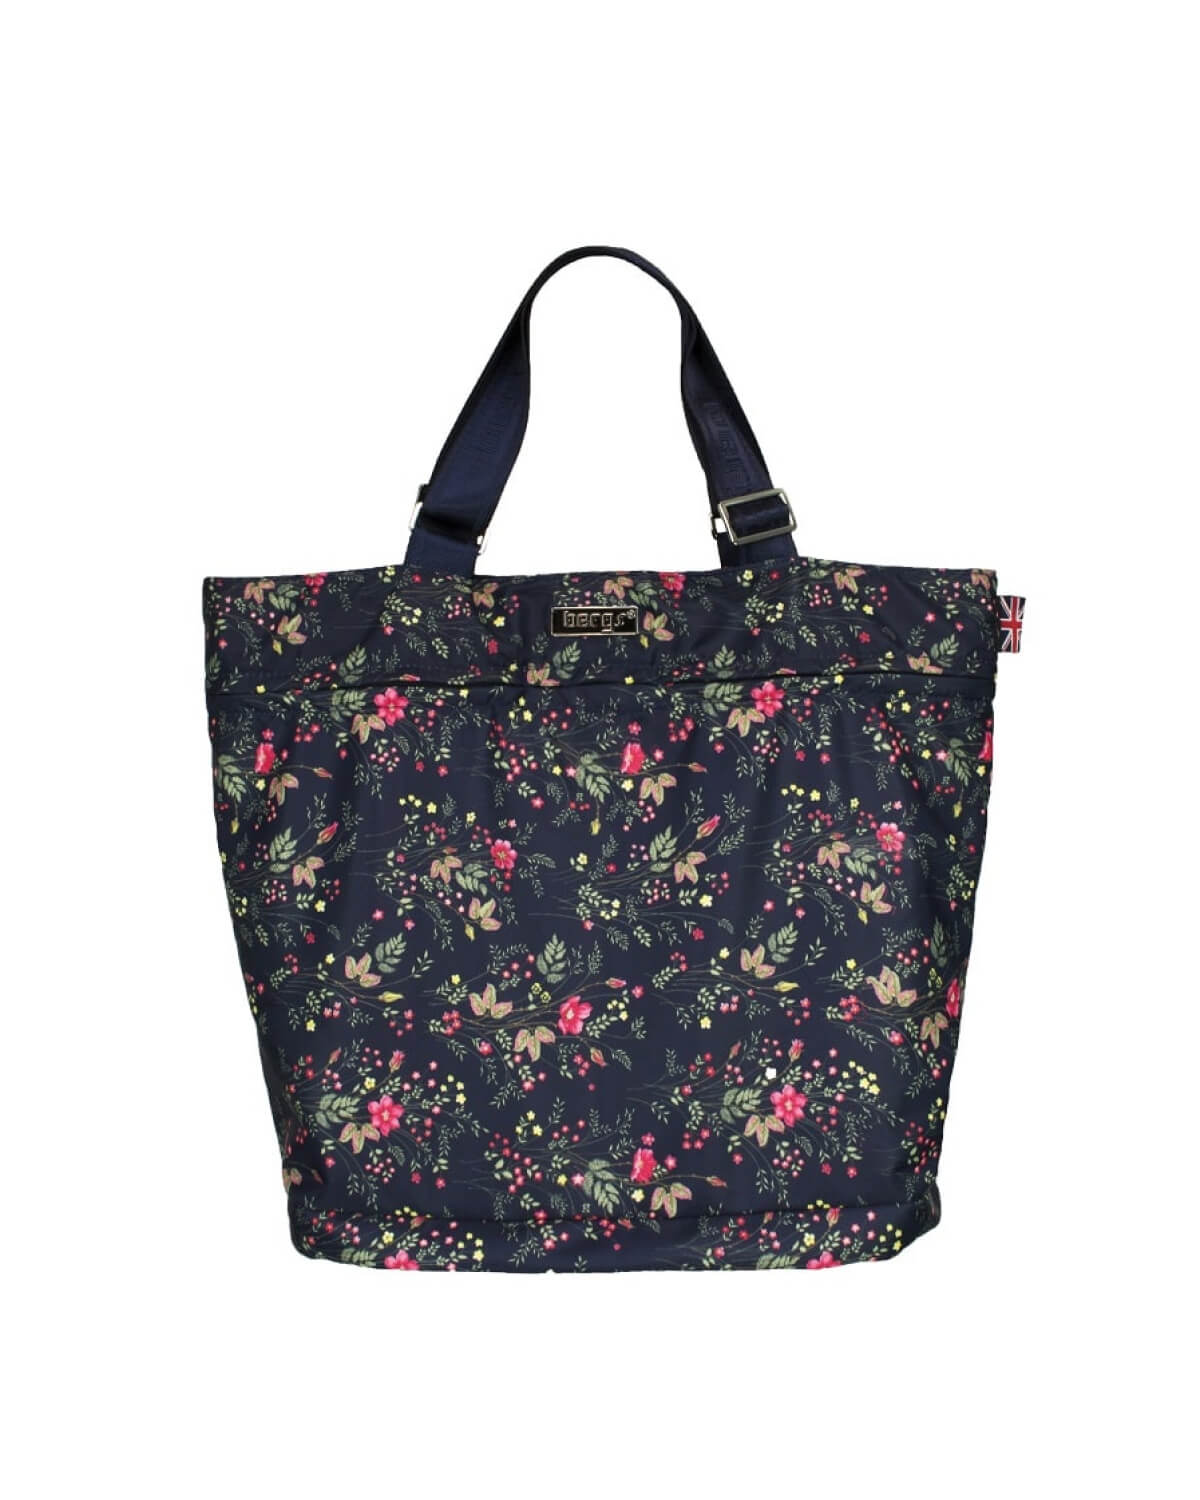 Bergs3in1 Multifunctional Bag Navy with Dog Roses